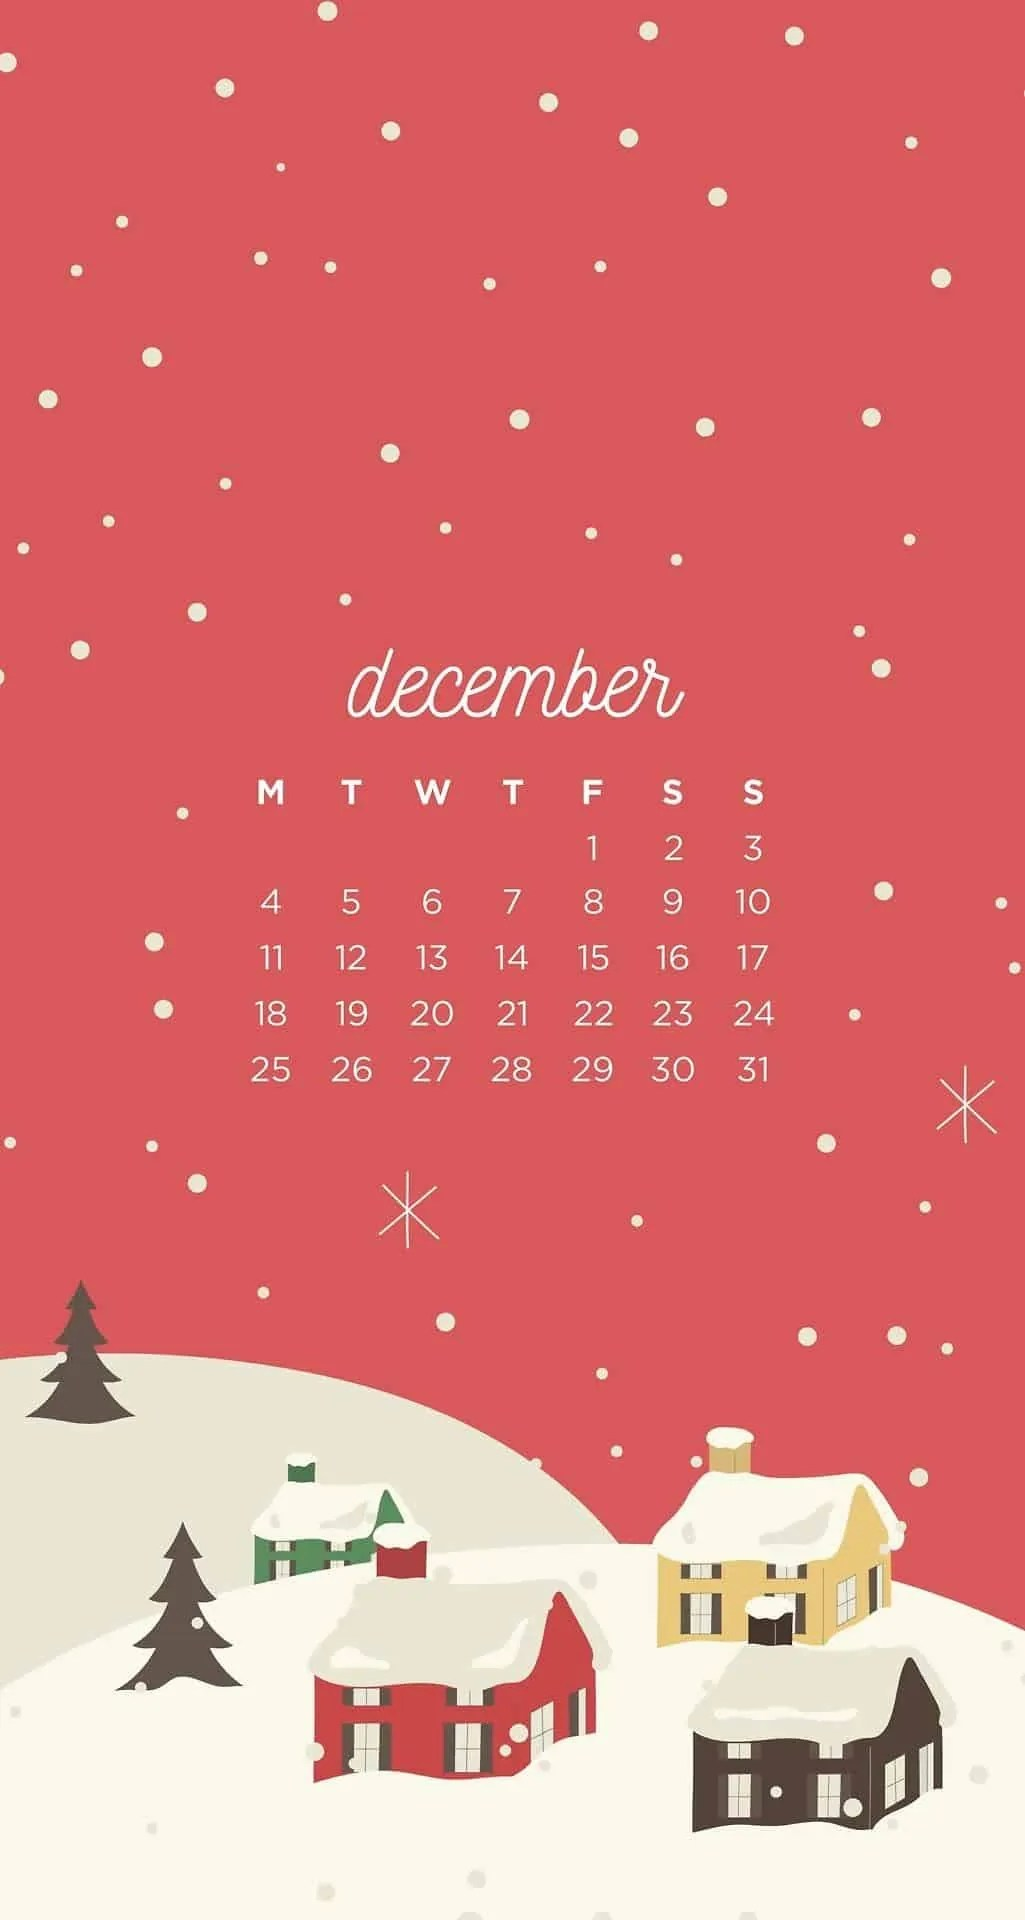 December-Christmas-Town-Phone-Wallpapers 5